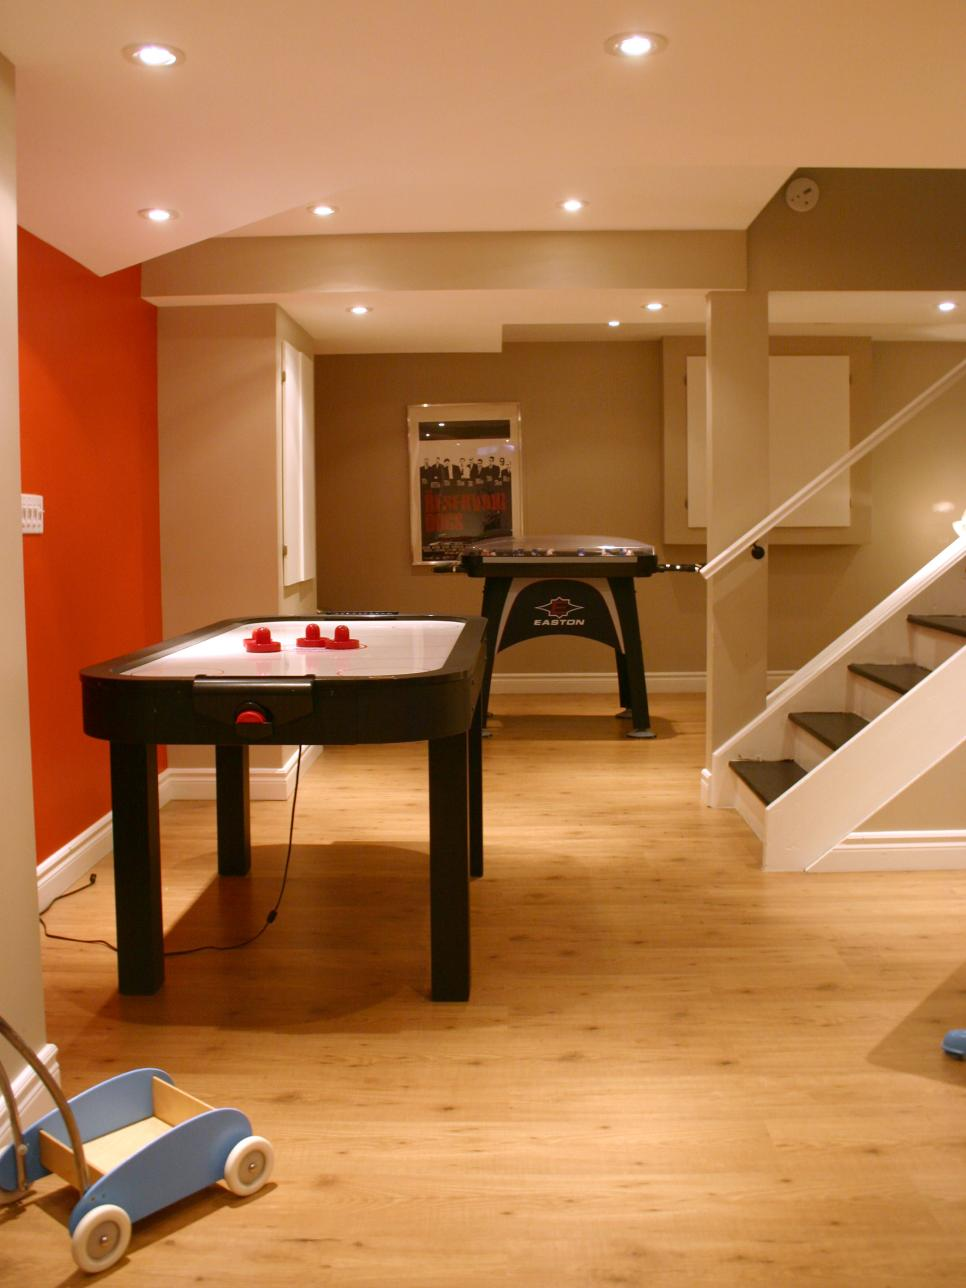 Basement design ideas hgtv - Basements ideas ...